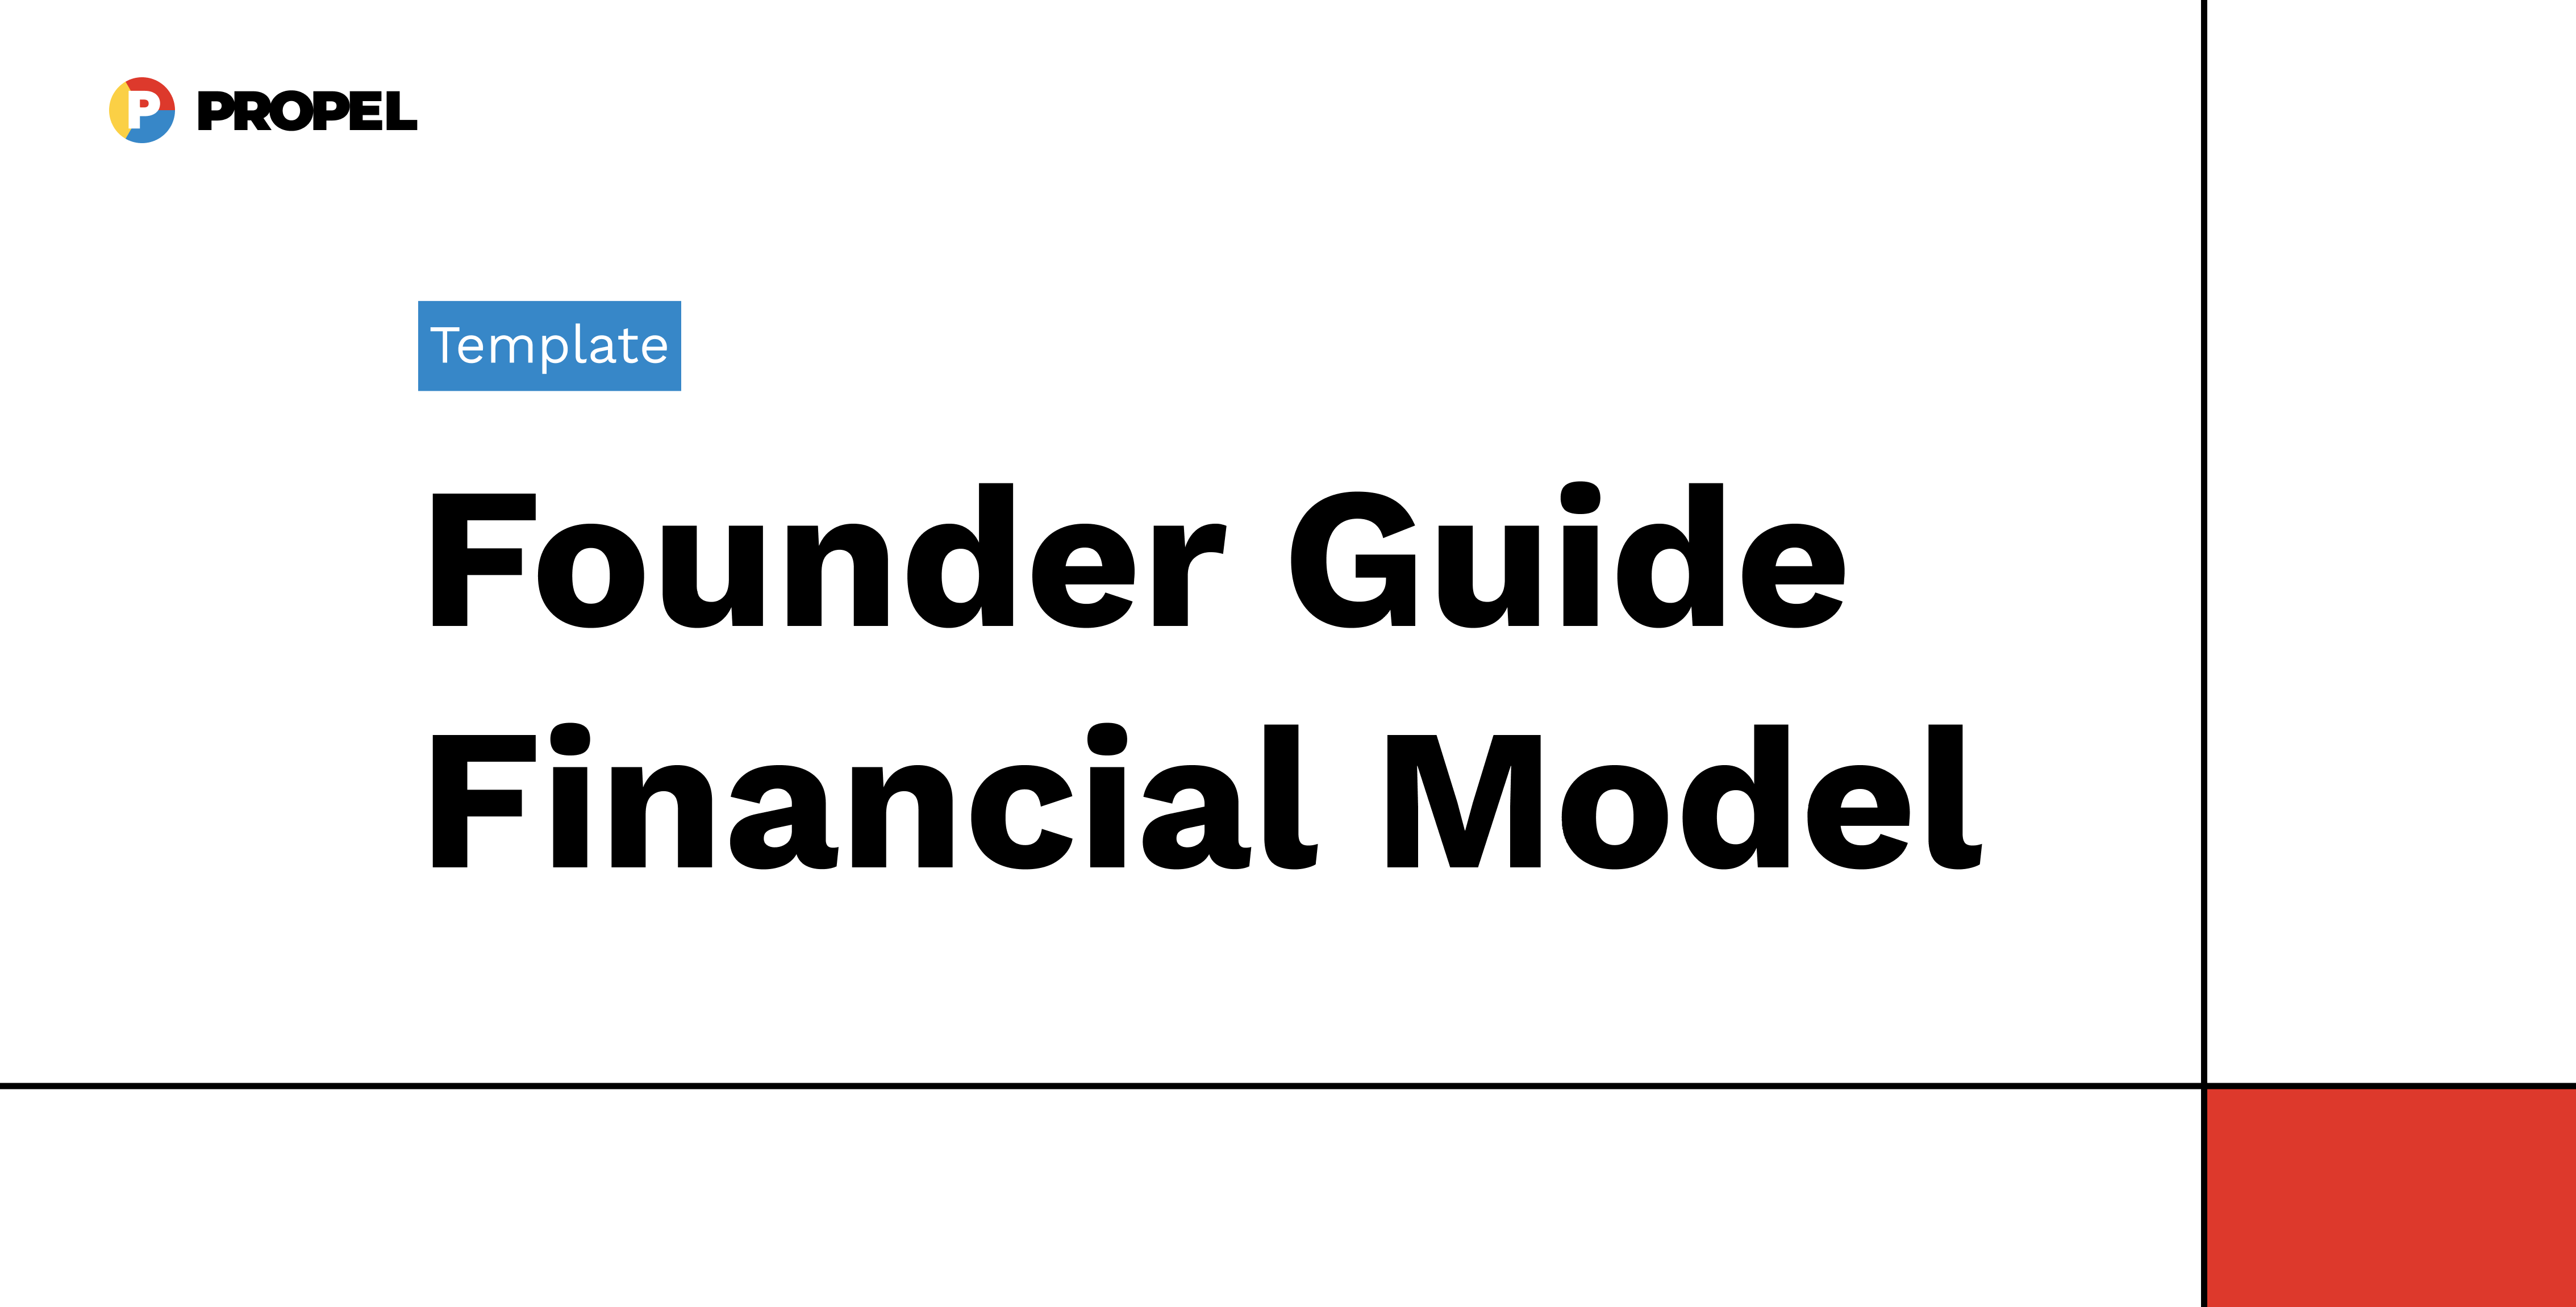 Founder Guide Financial Model - Template